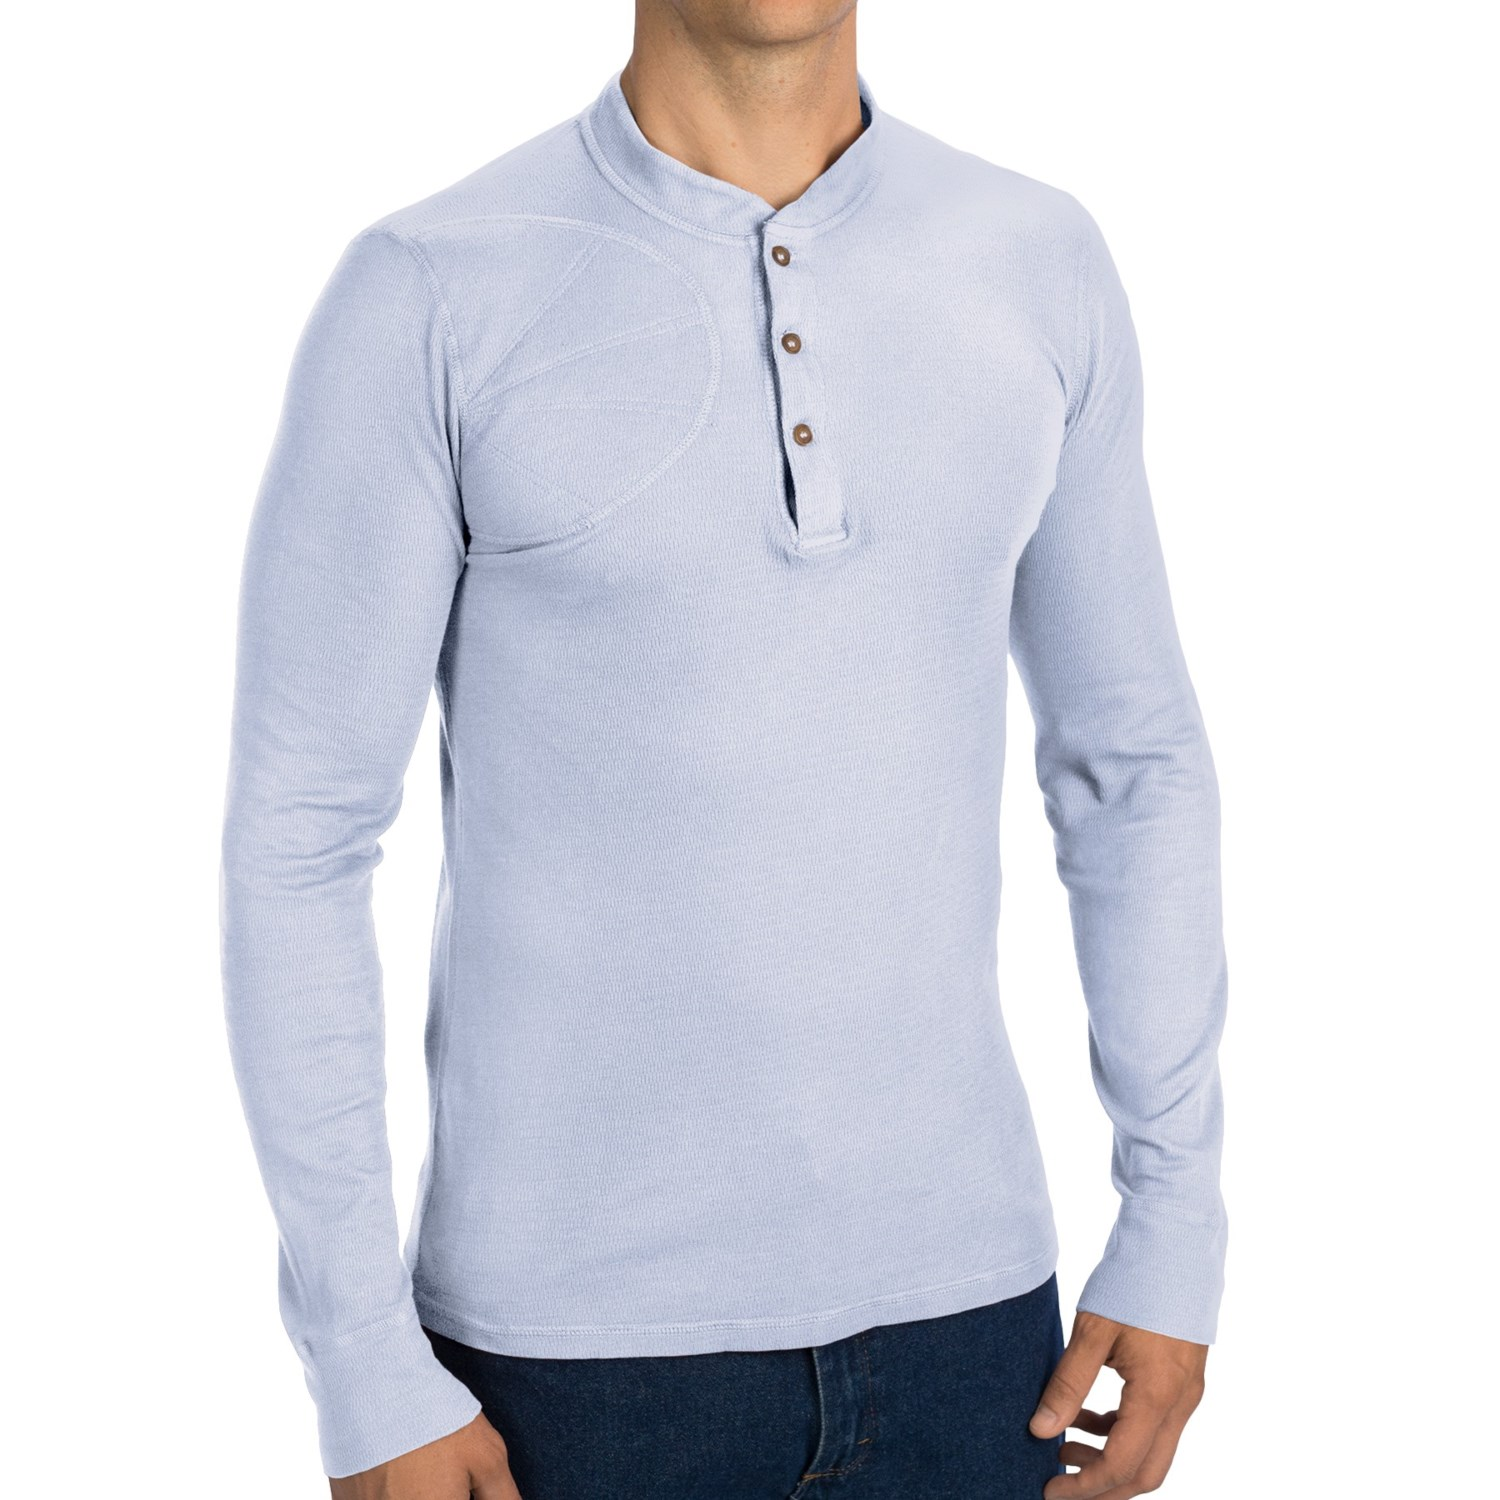 Document moved for Men s thermal henley long sleeve shirts